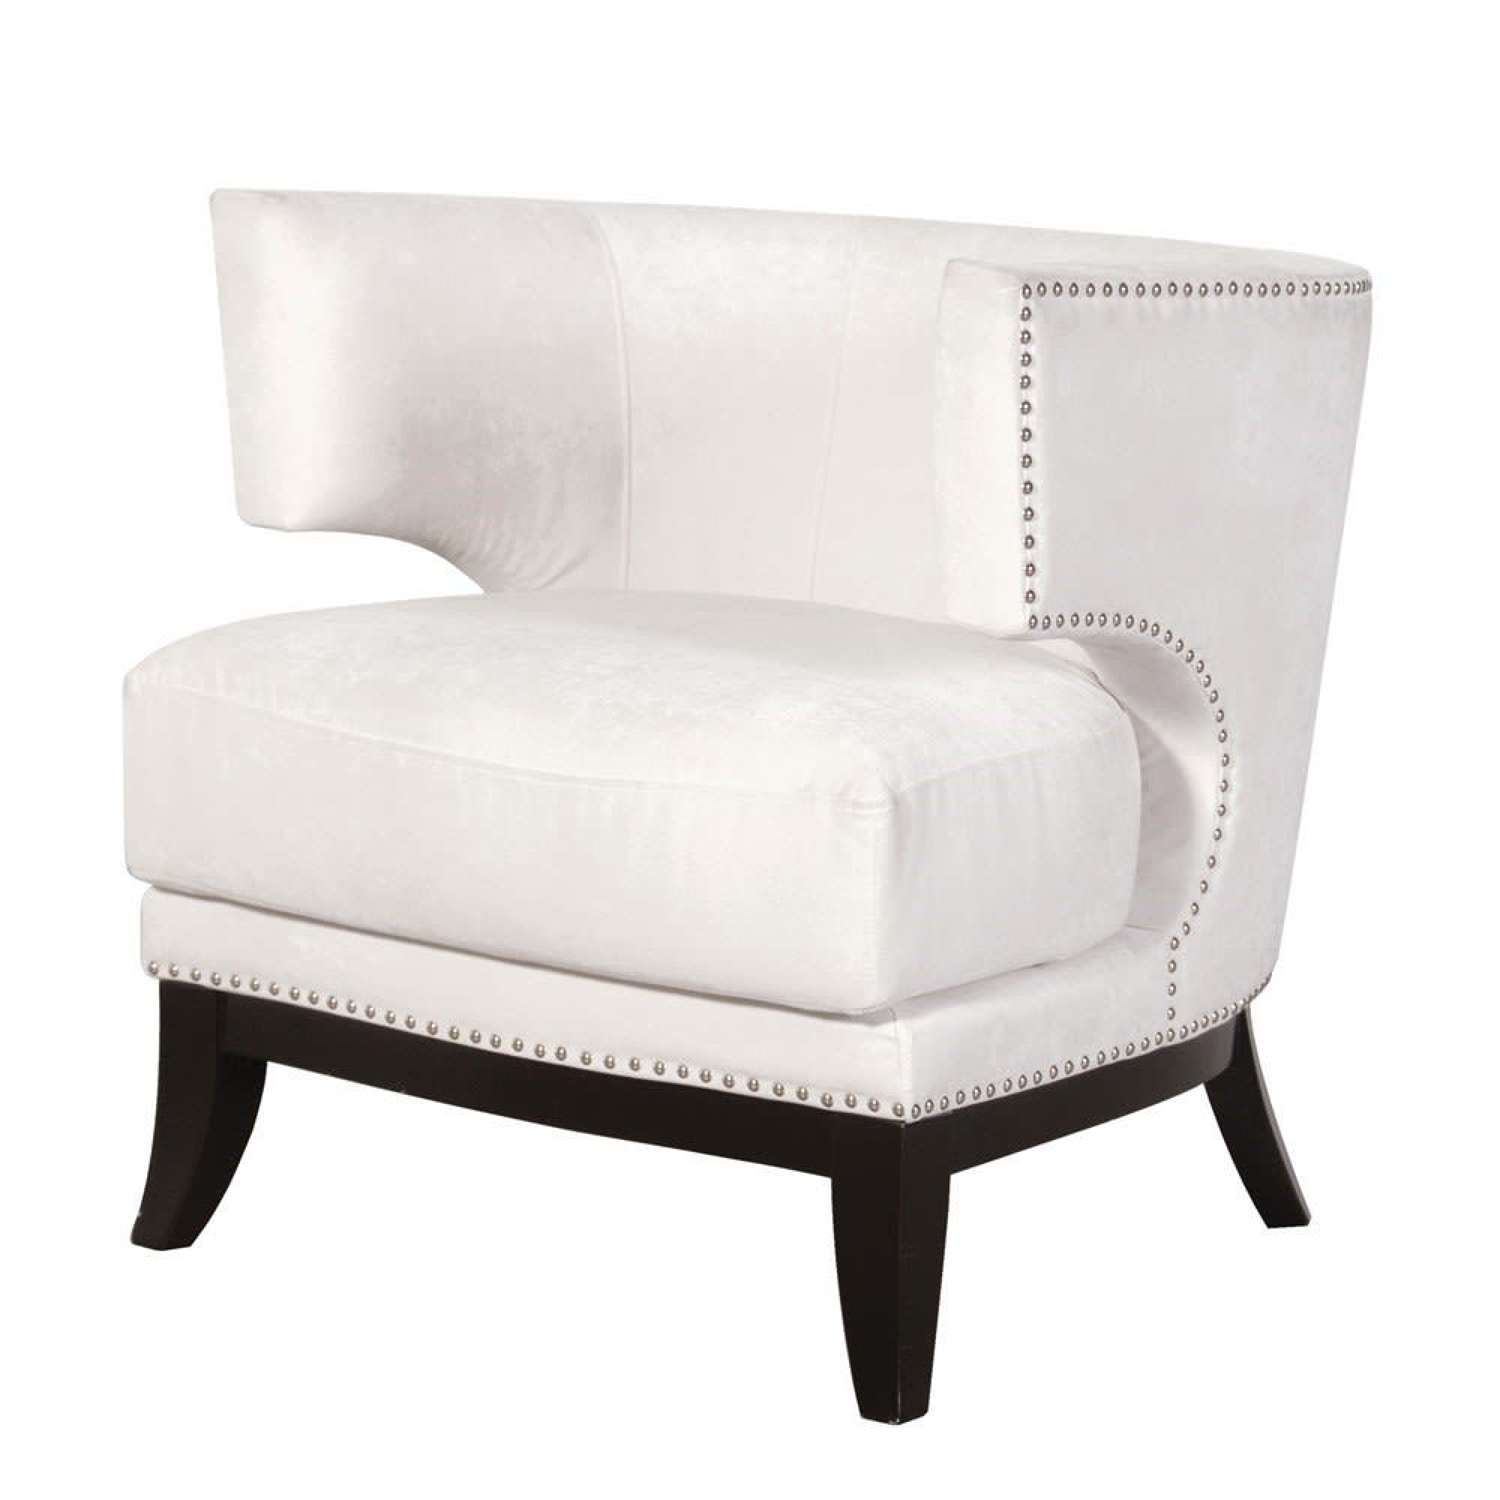 Studded Modern Shaped Arm Chair - Cream